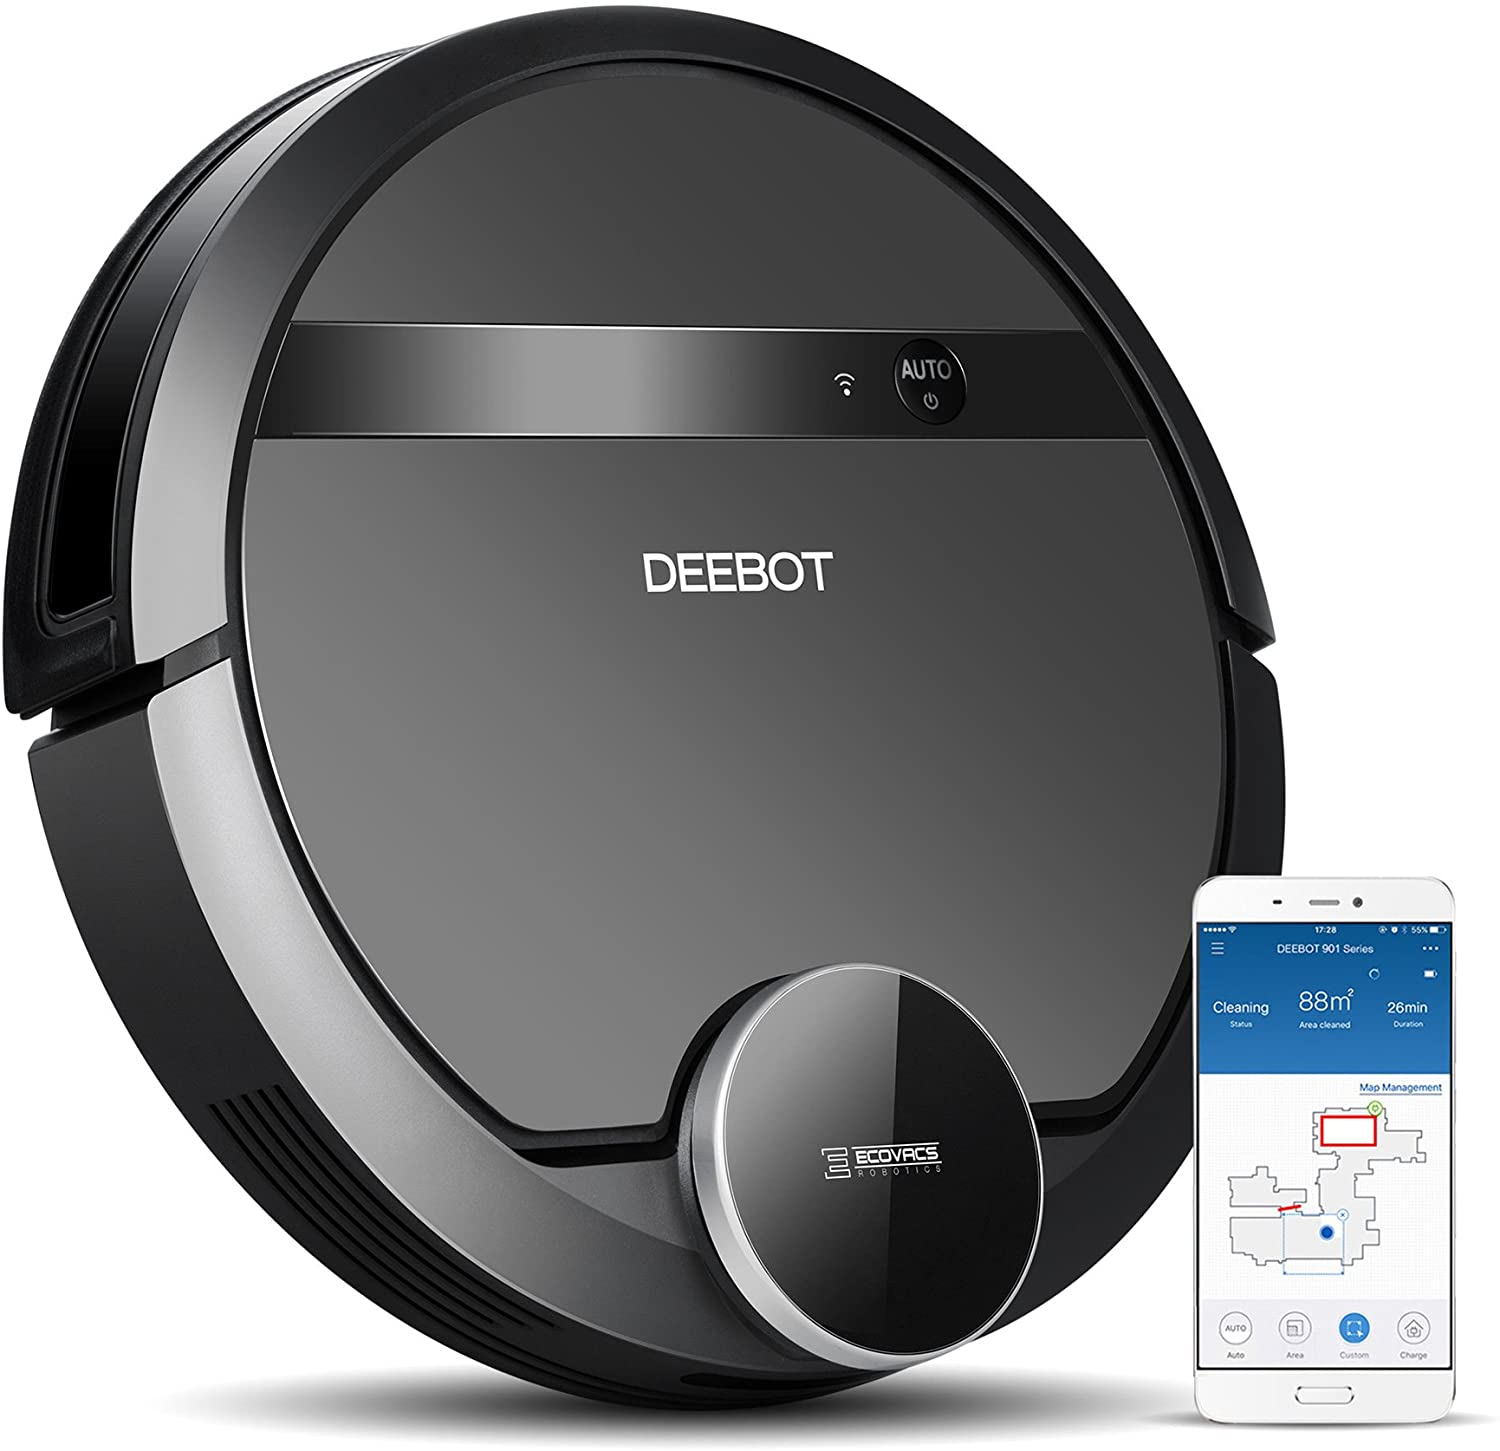 Easily Customize the Cleaning Process with Ecovacs Deebot 901